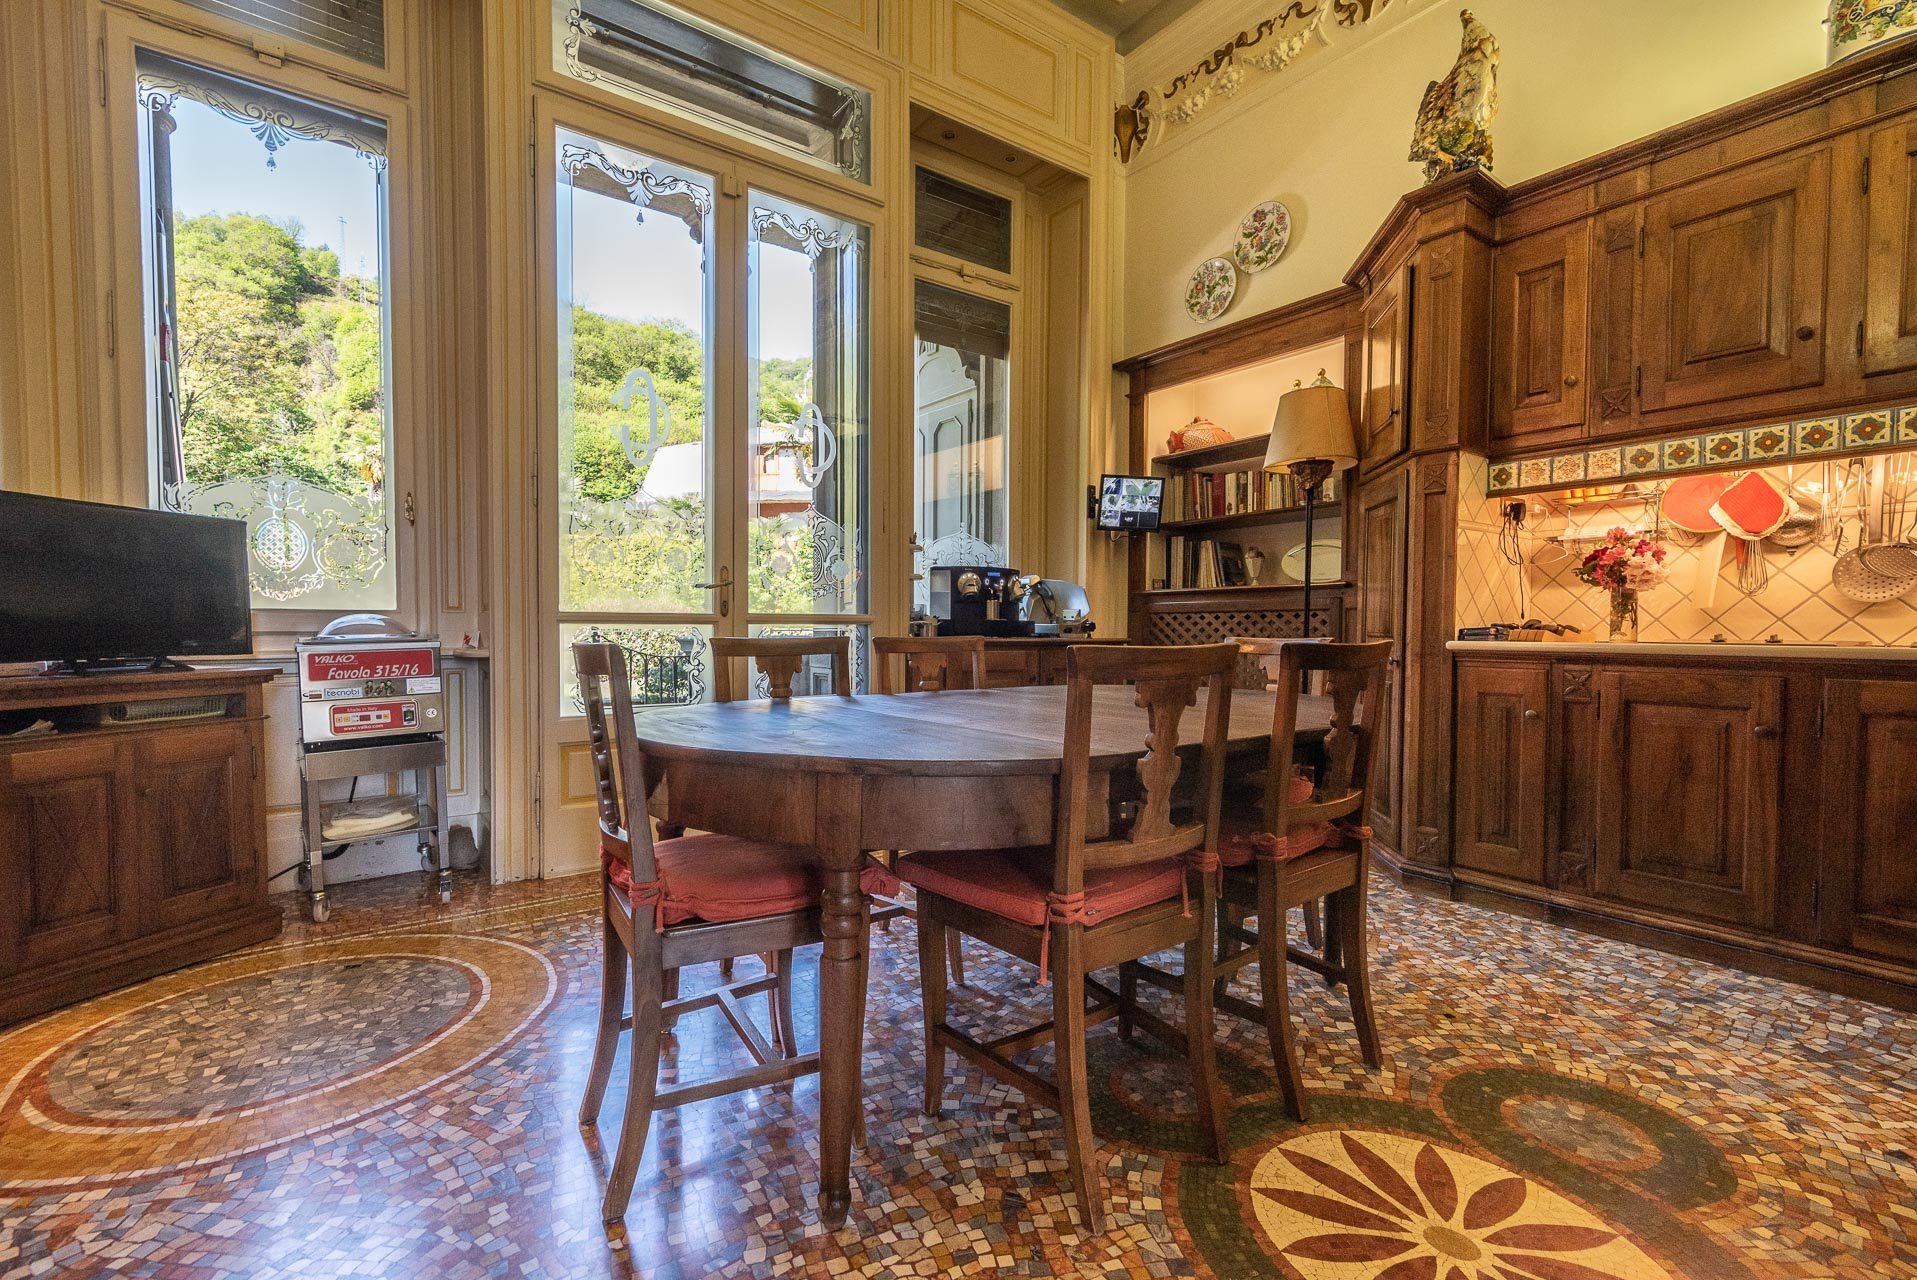 Luxurious apartment for sale in a villa in Stresa - kitchen